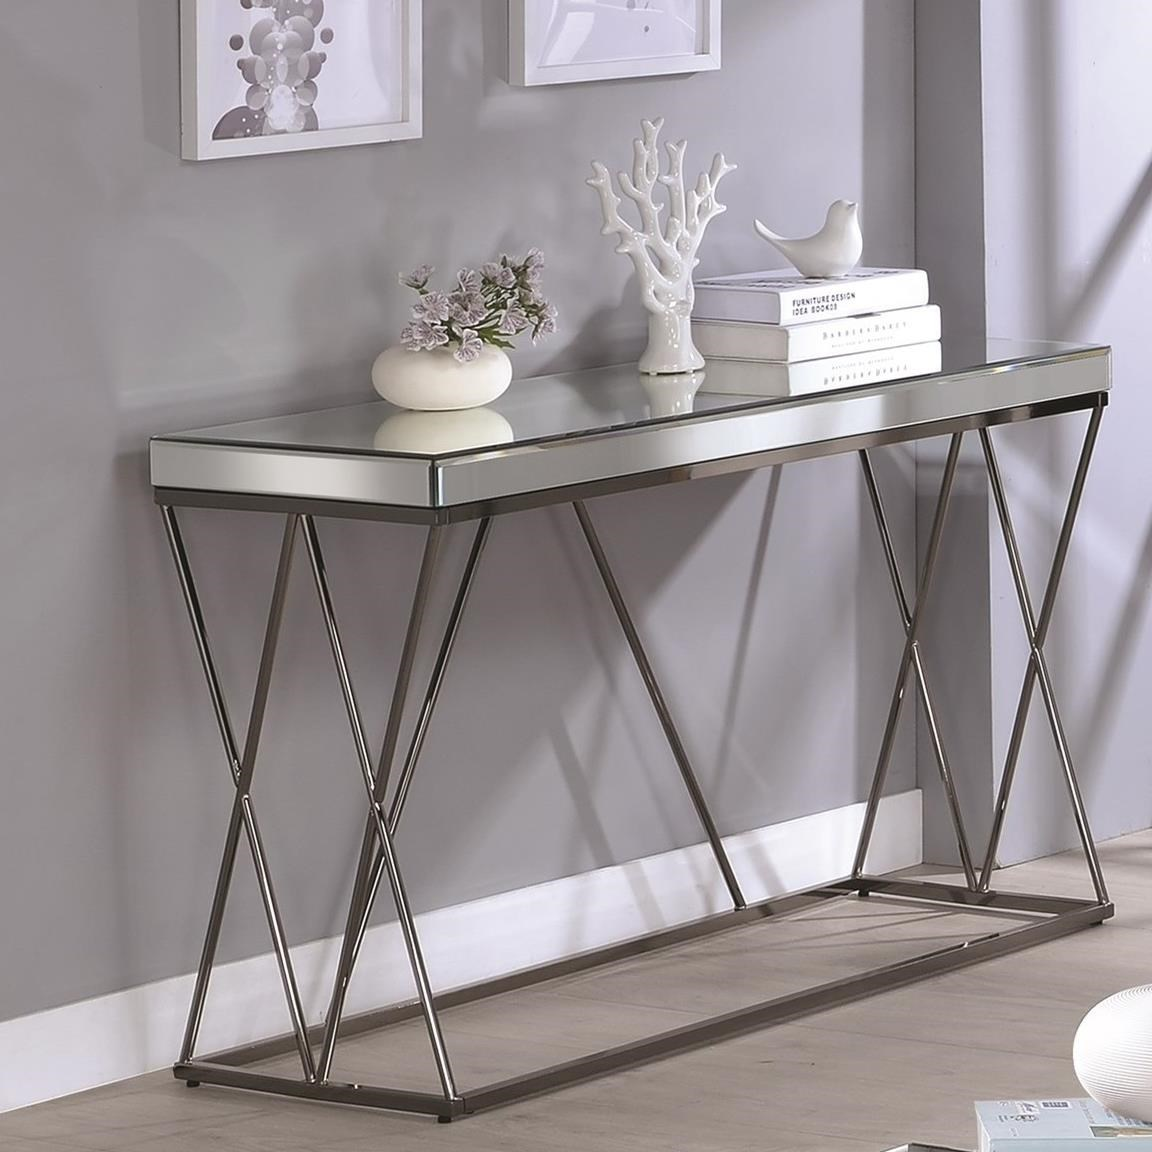 705479 contemporary mirrored sofa table with metal legs